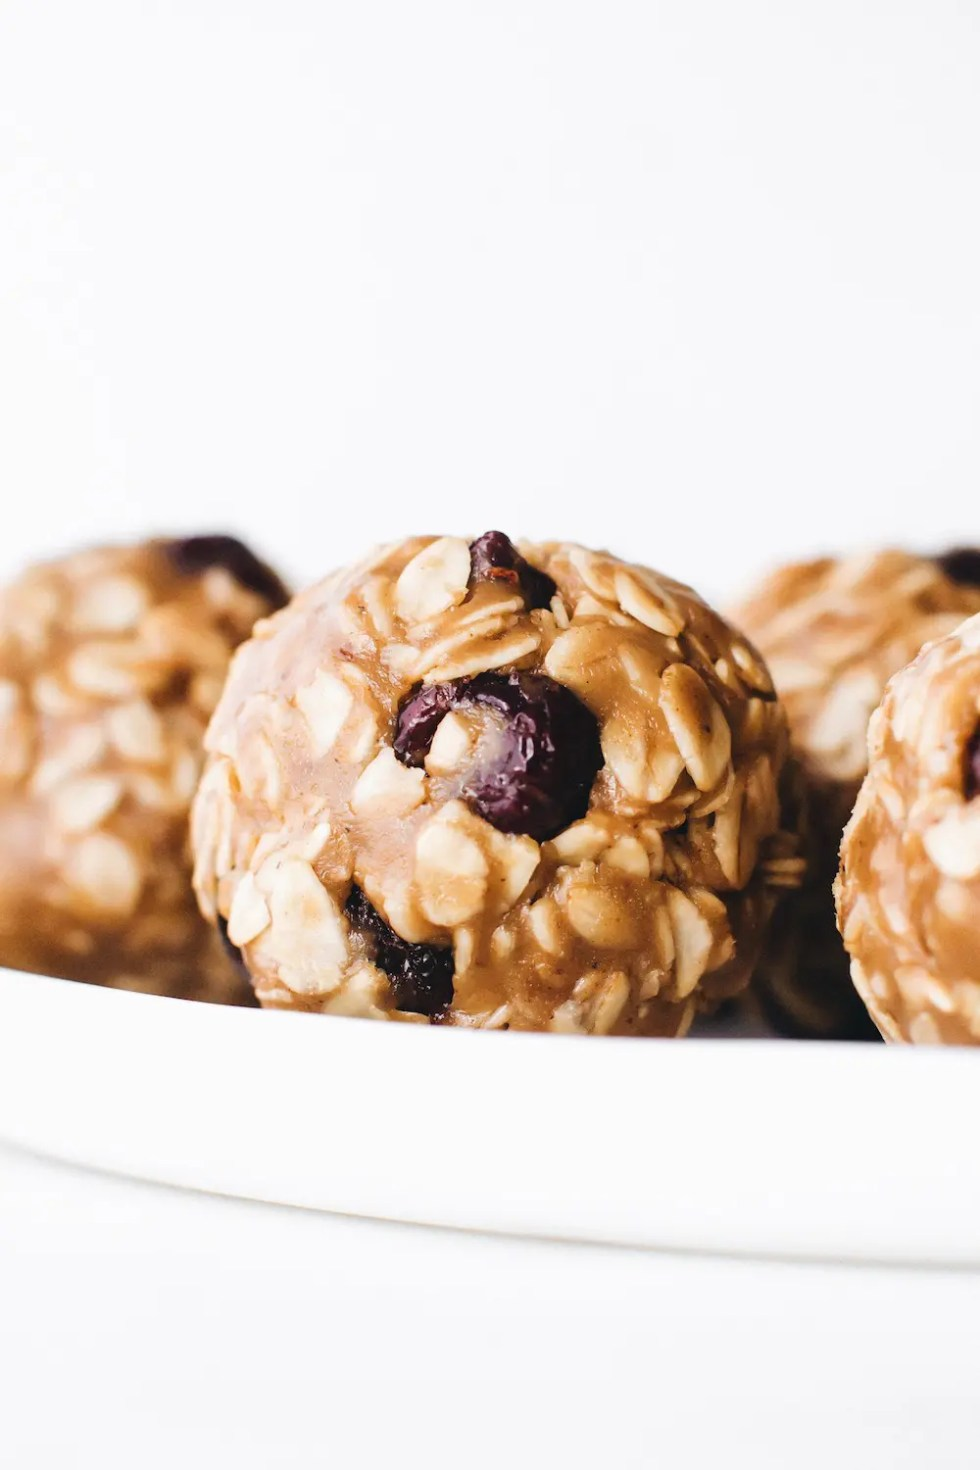 Happy spherical snack making to you!